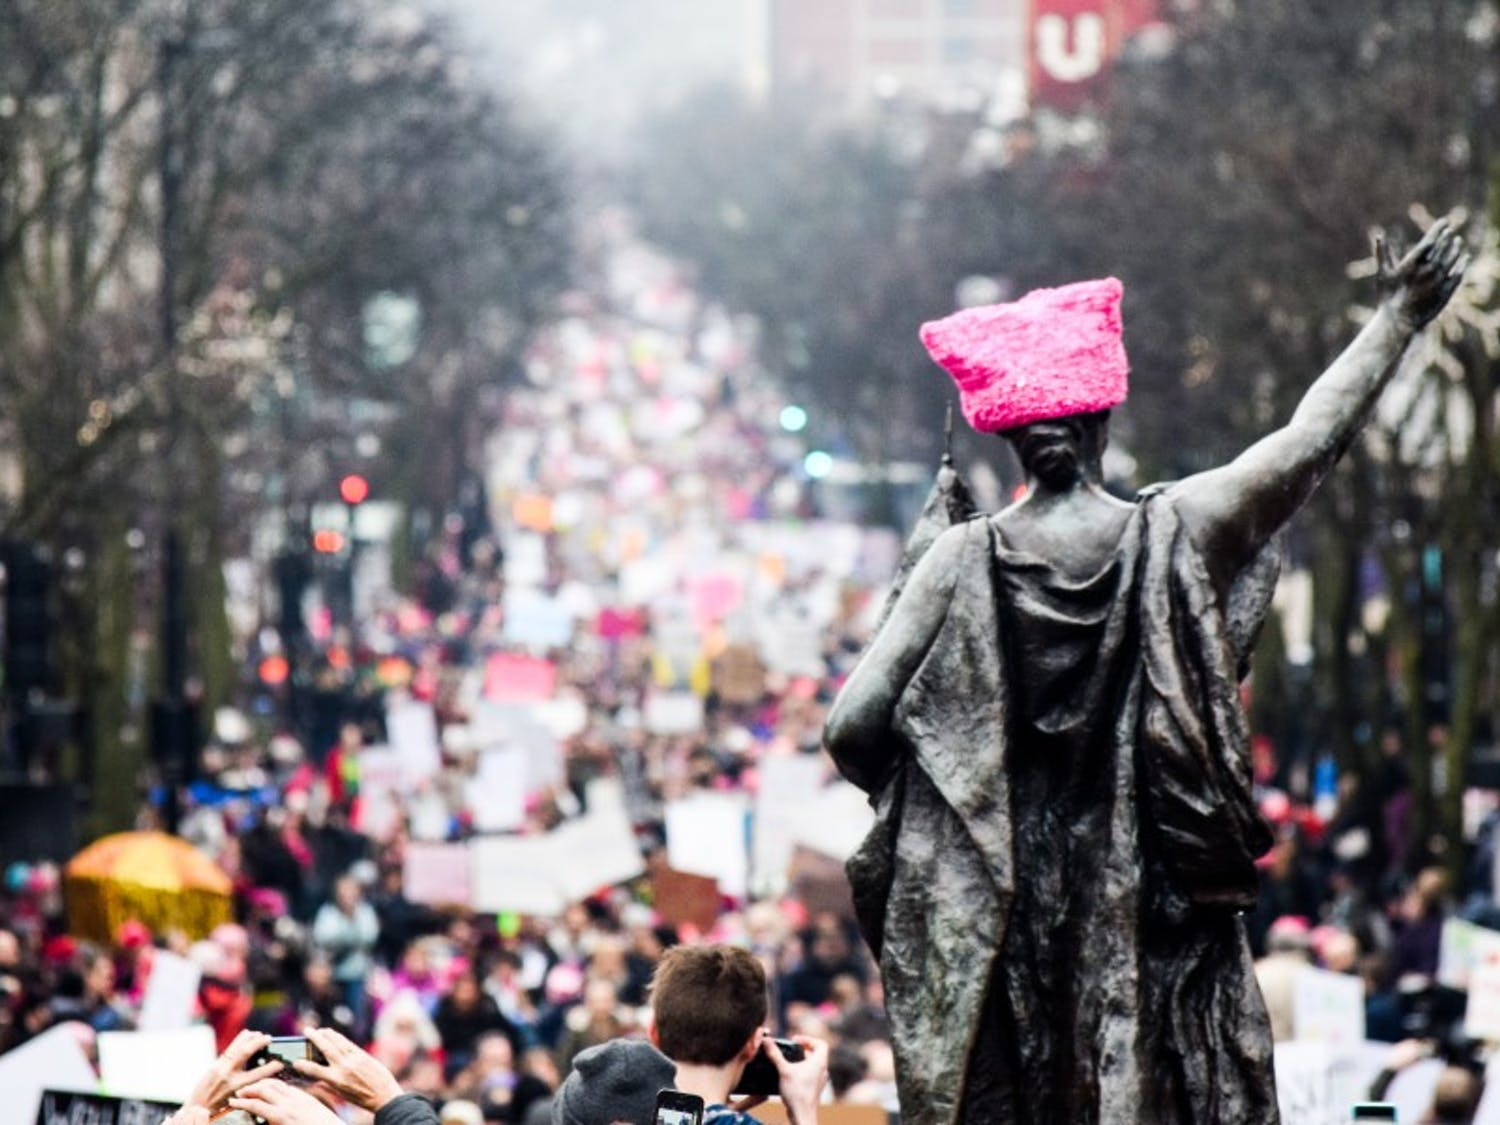 Approximately 100,000 people filled State Street and Capitol Square Saturday as a part of the Women's March, an international movement following the inauguration of President Donald Trump.